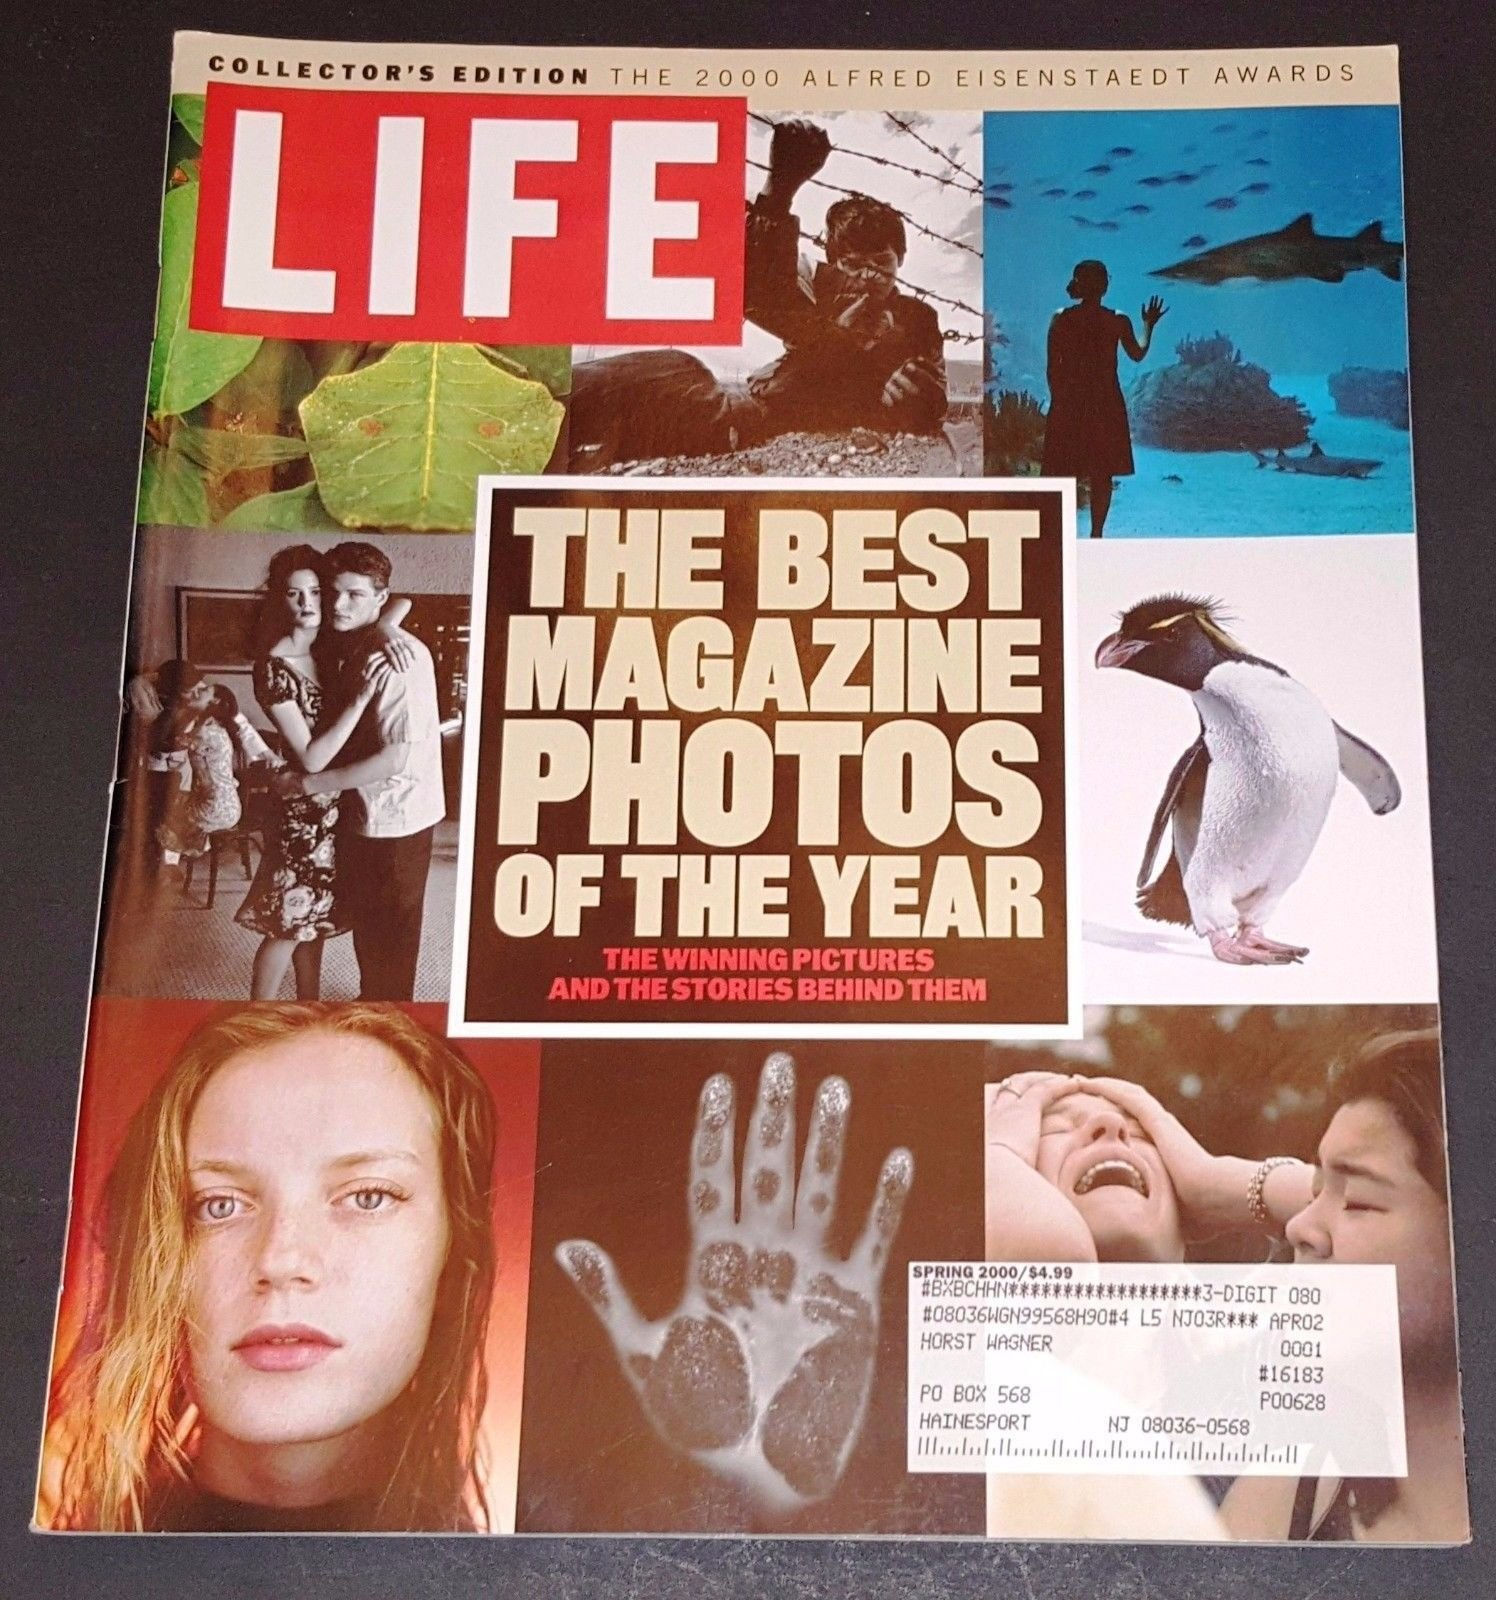 life the best magazine photos of the year the winning pictures and the stories behind them collectors edition the 2000 alfred eisenstaedt awards spring 2000